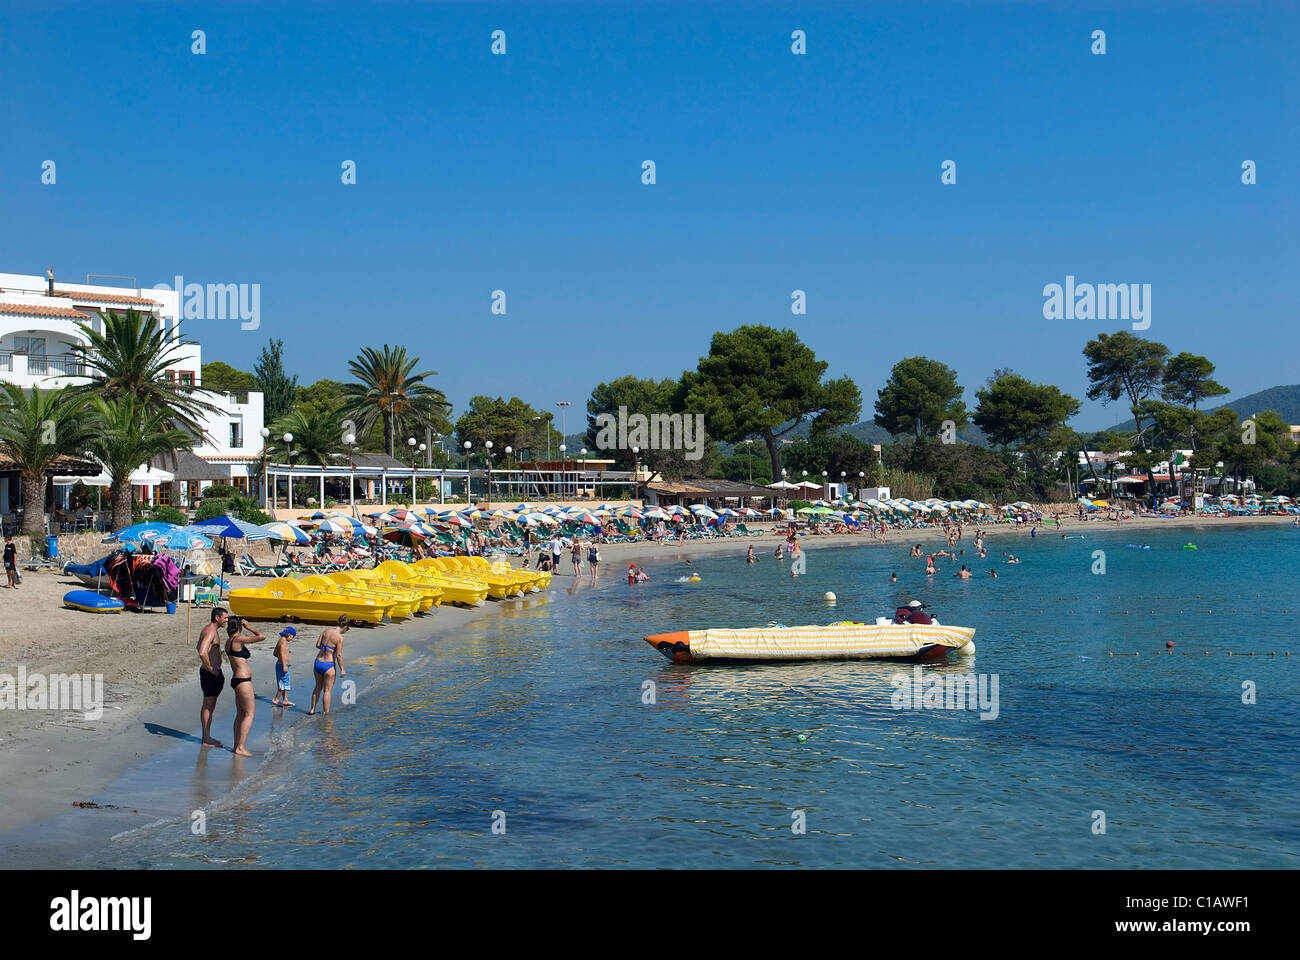 Es Cana, ibiza, Balearics, Spain - Stock Image